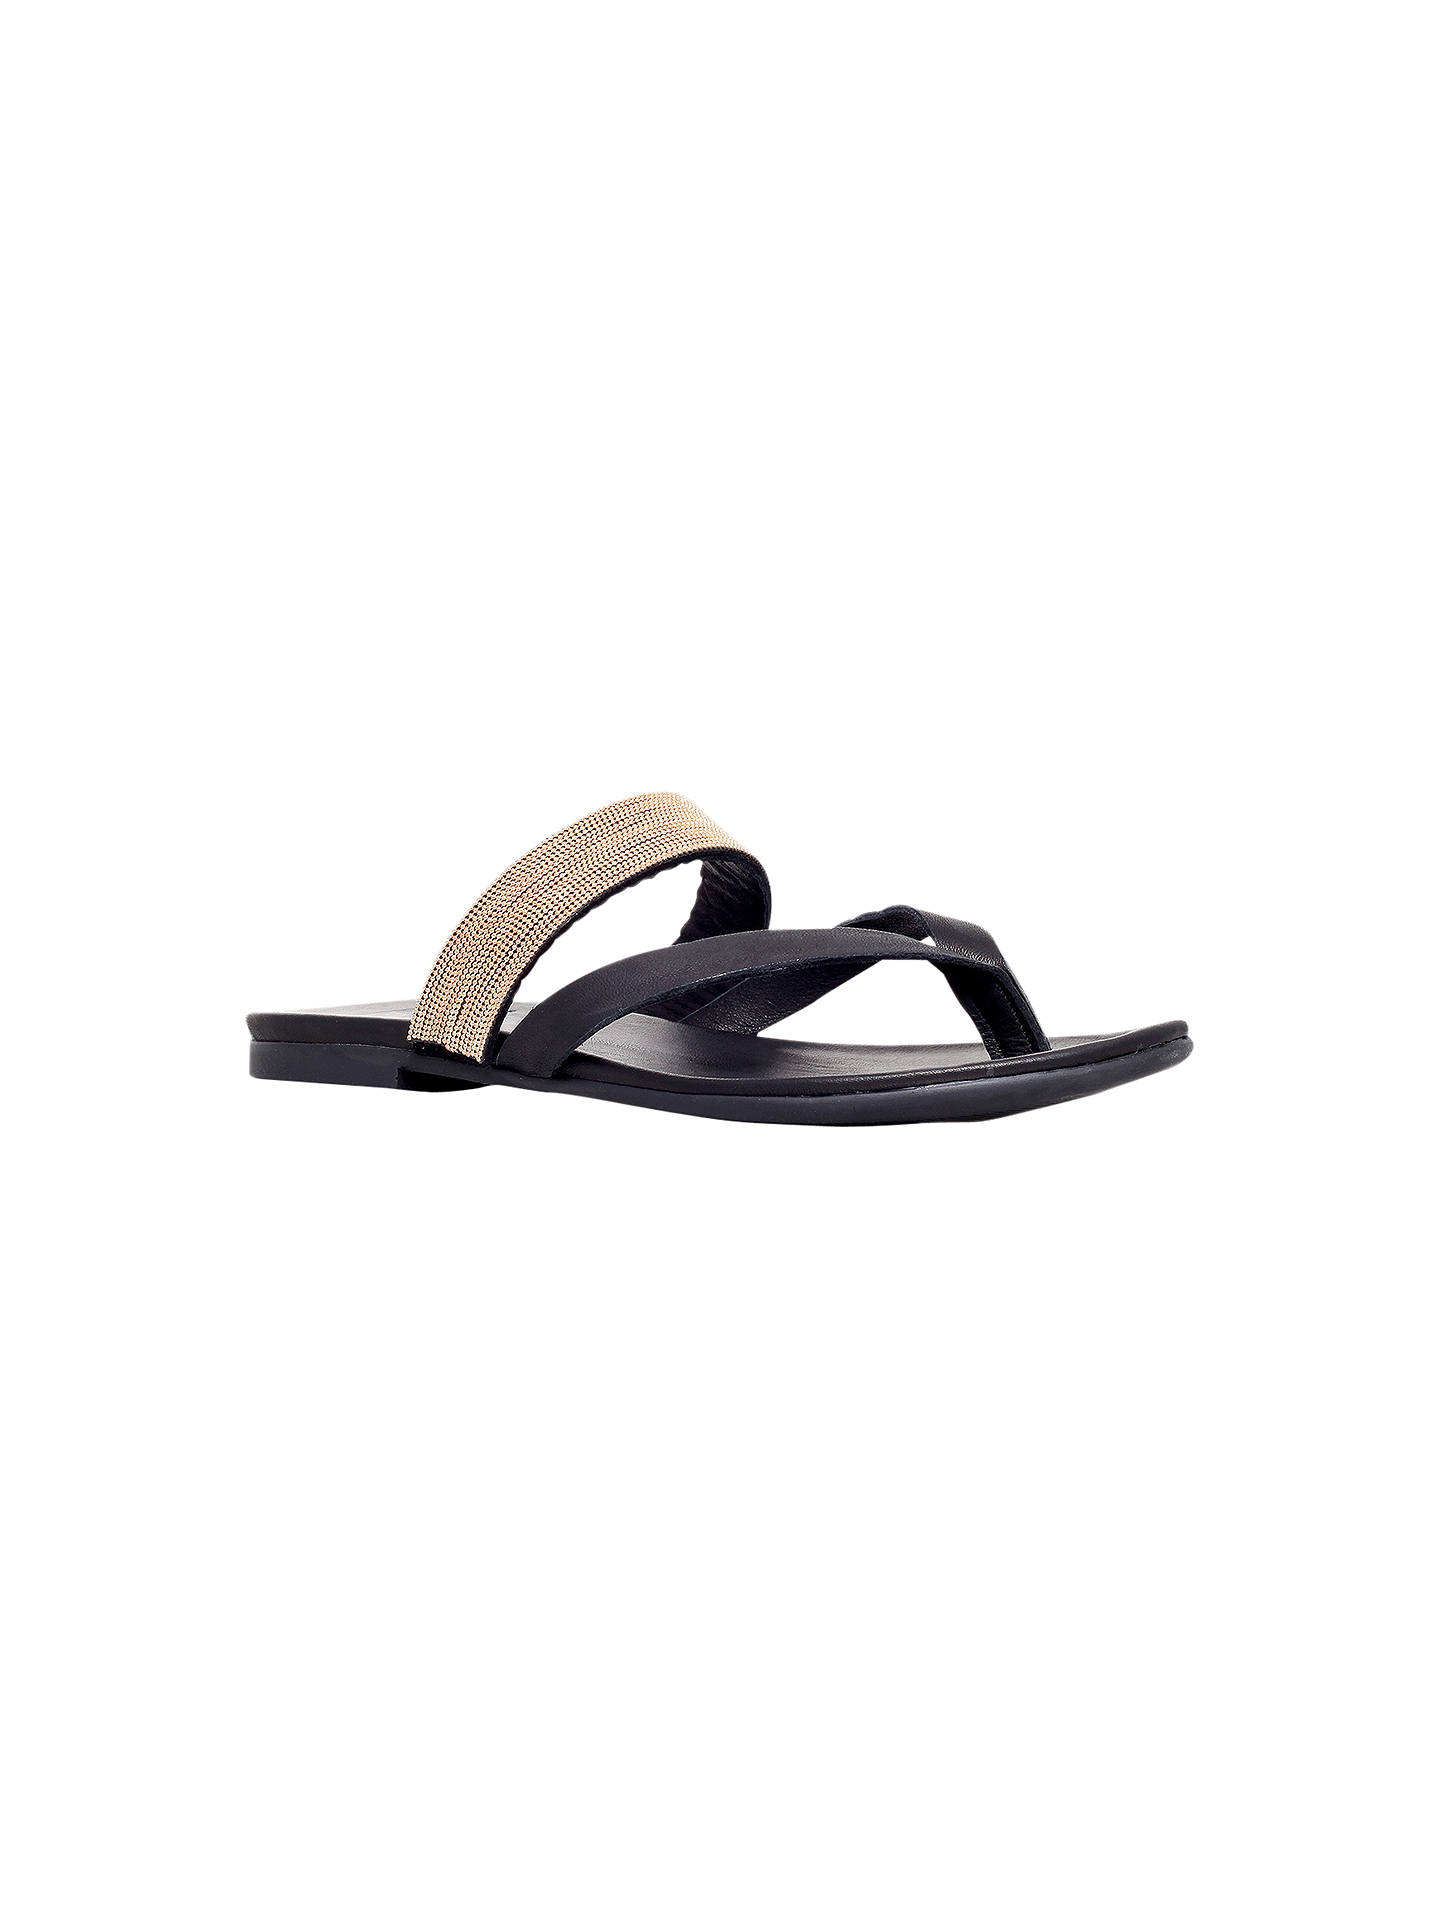 0d00684ad KG by Kurt Geiger Mae Leather Toe Thong Sandals at John Lewis   Partners